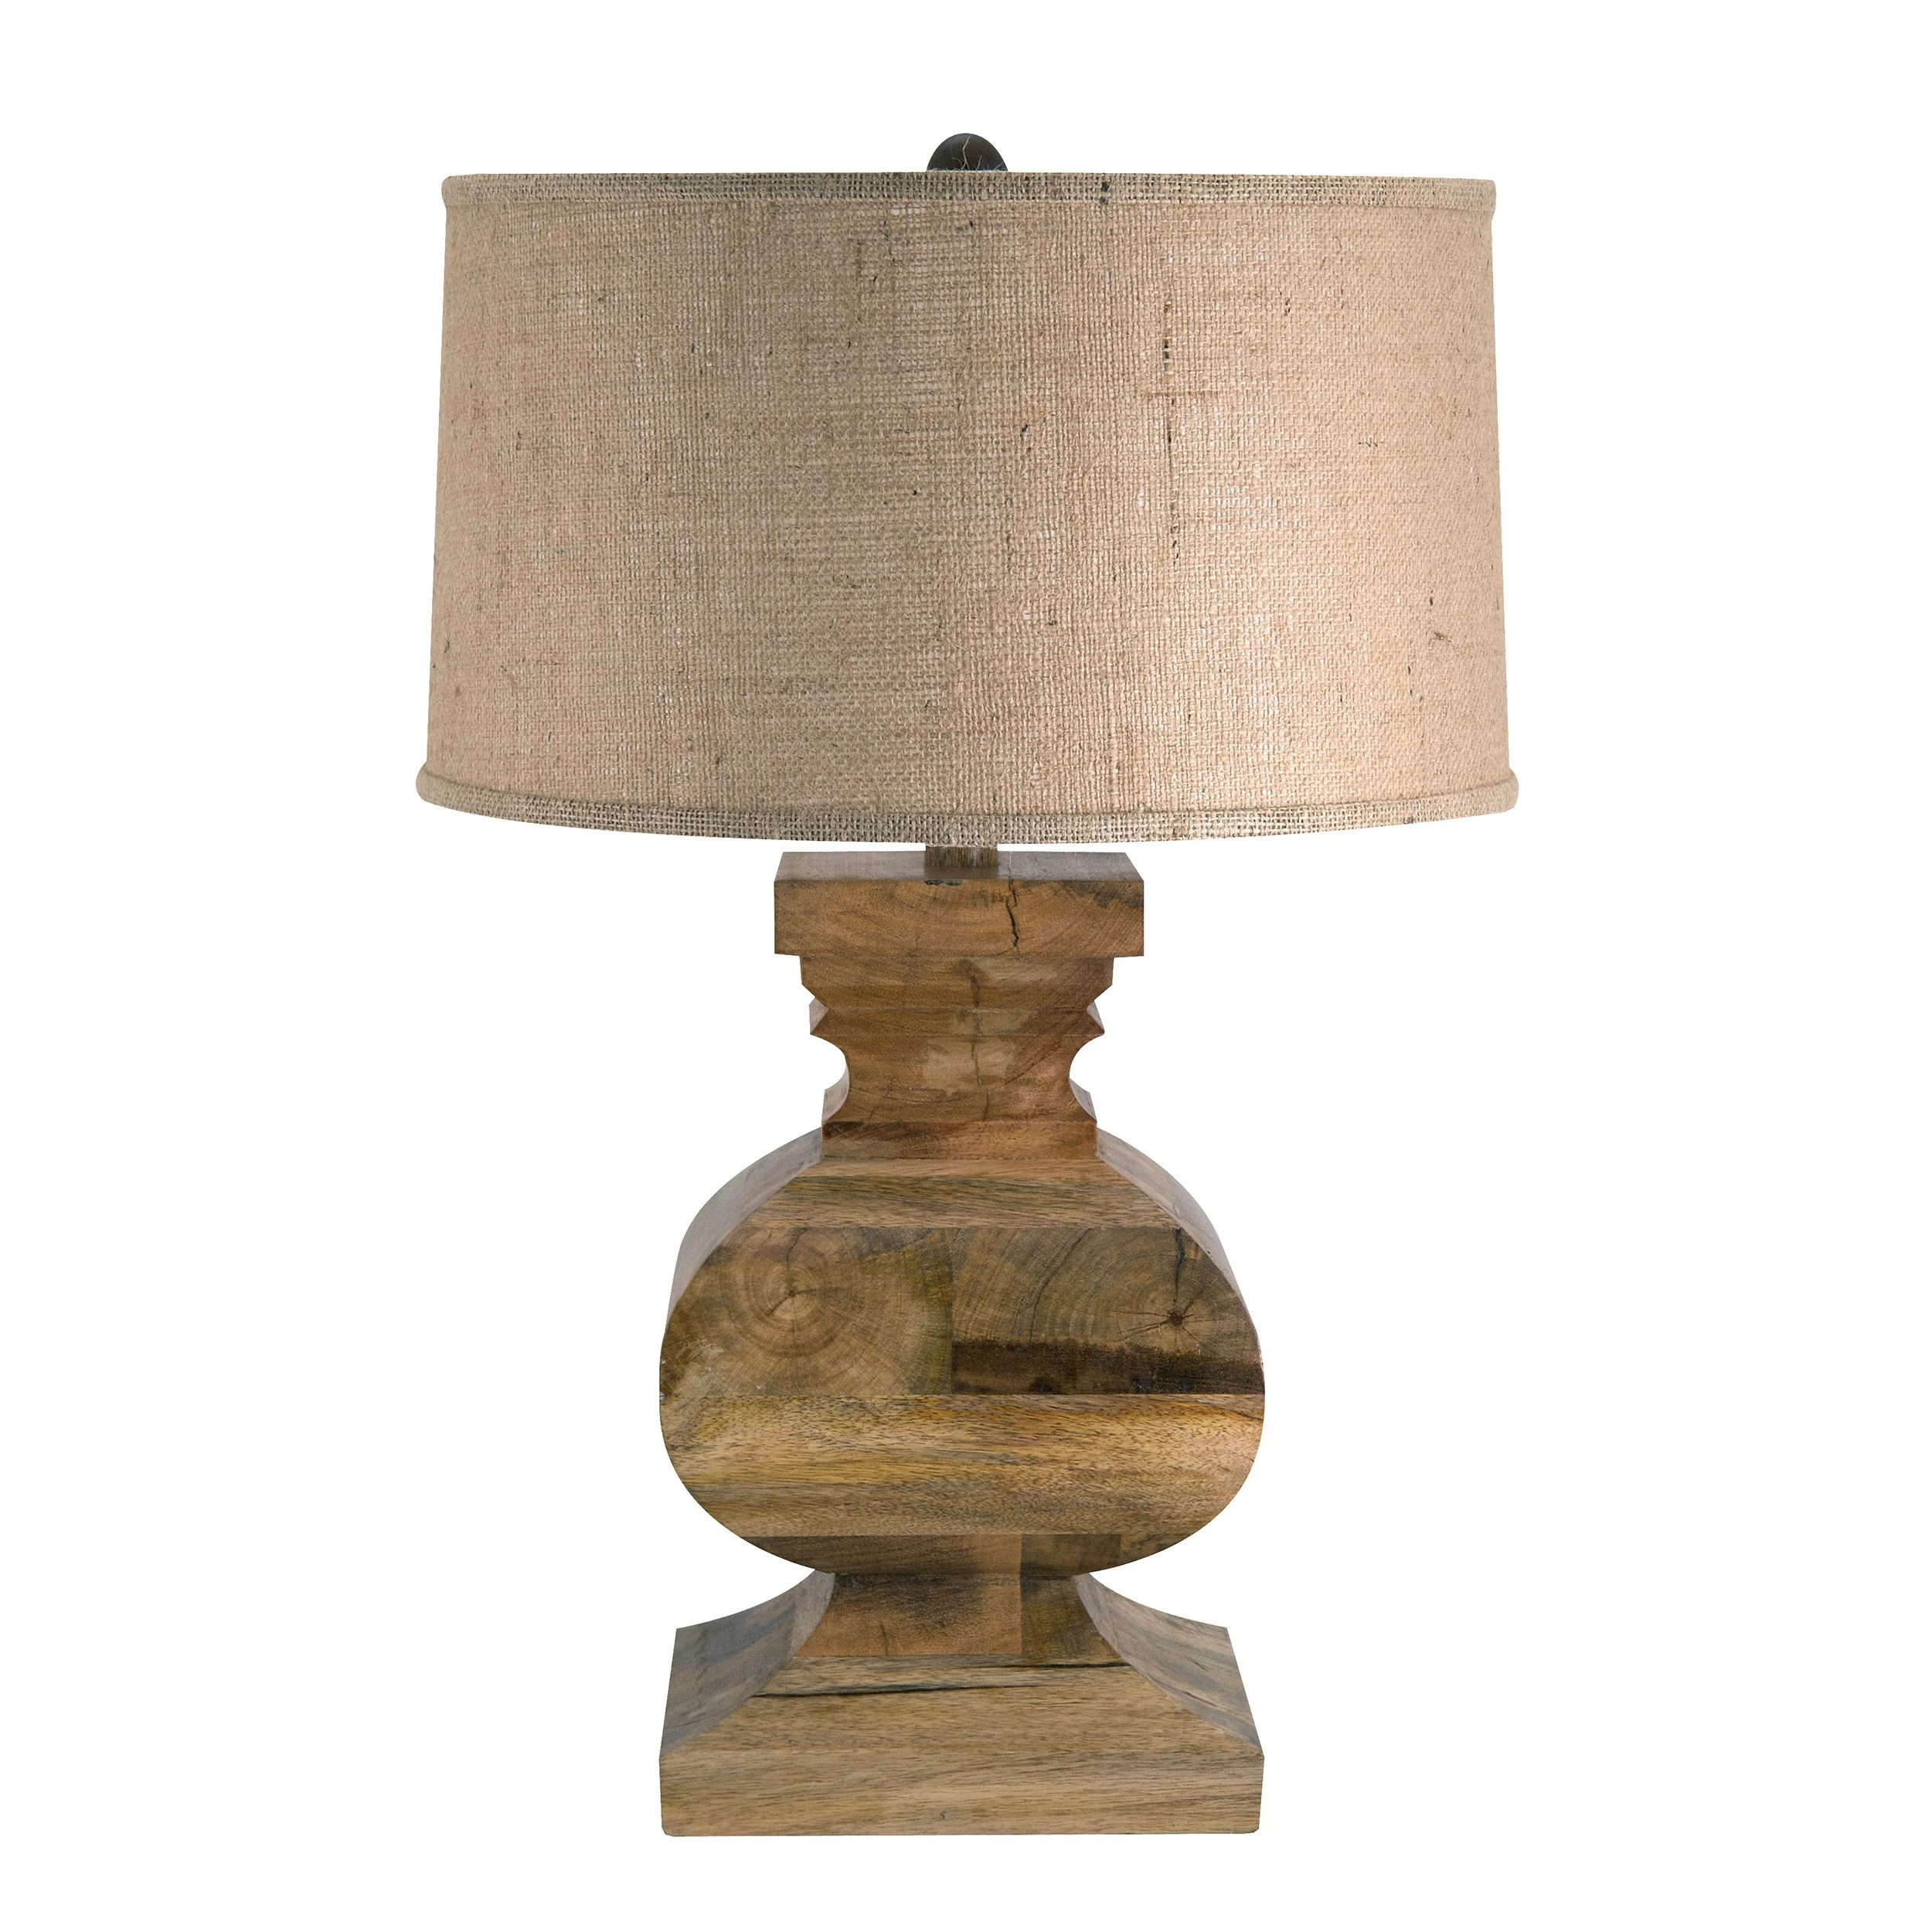 Real Wood Lamps Shop Solid Wood Curved Block Lamp Free Shipping Today